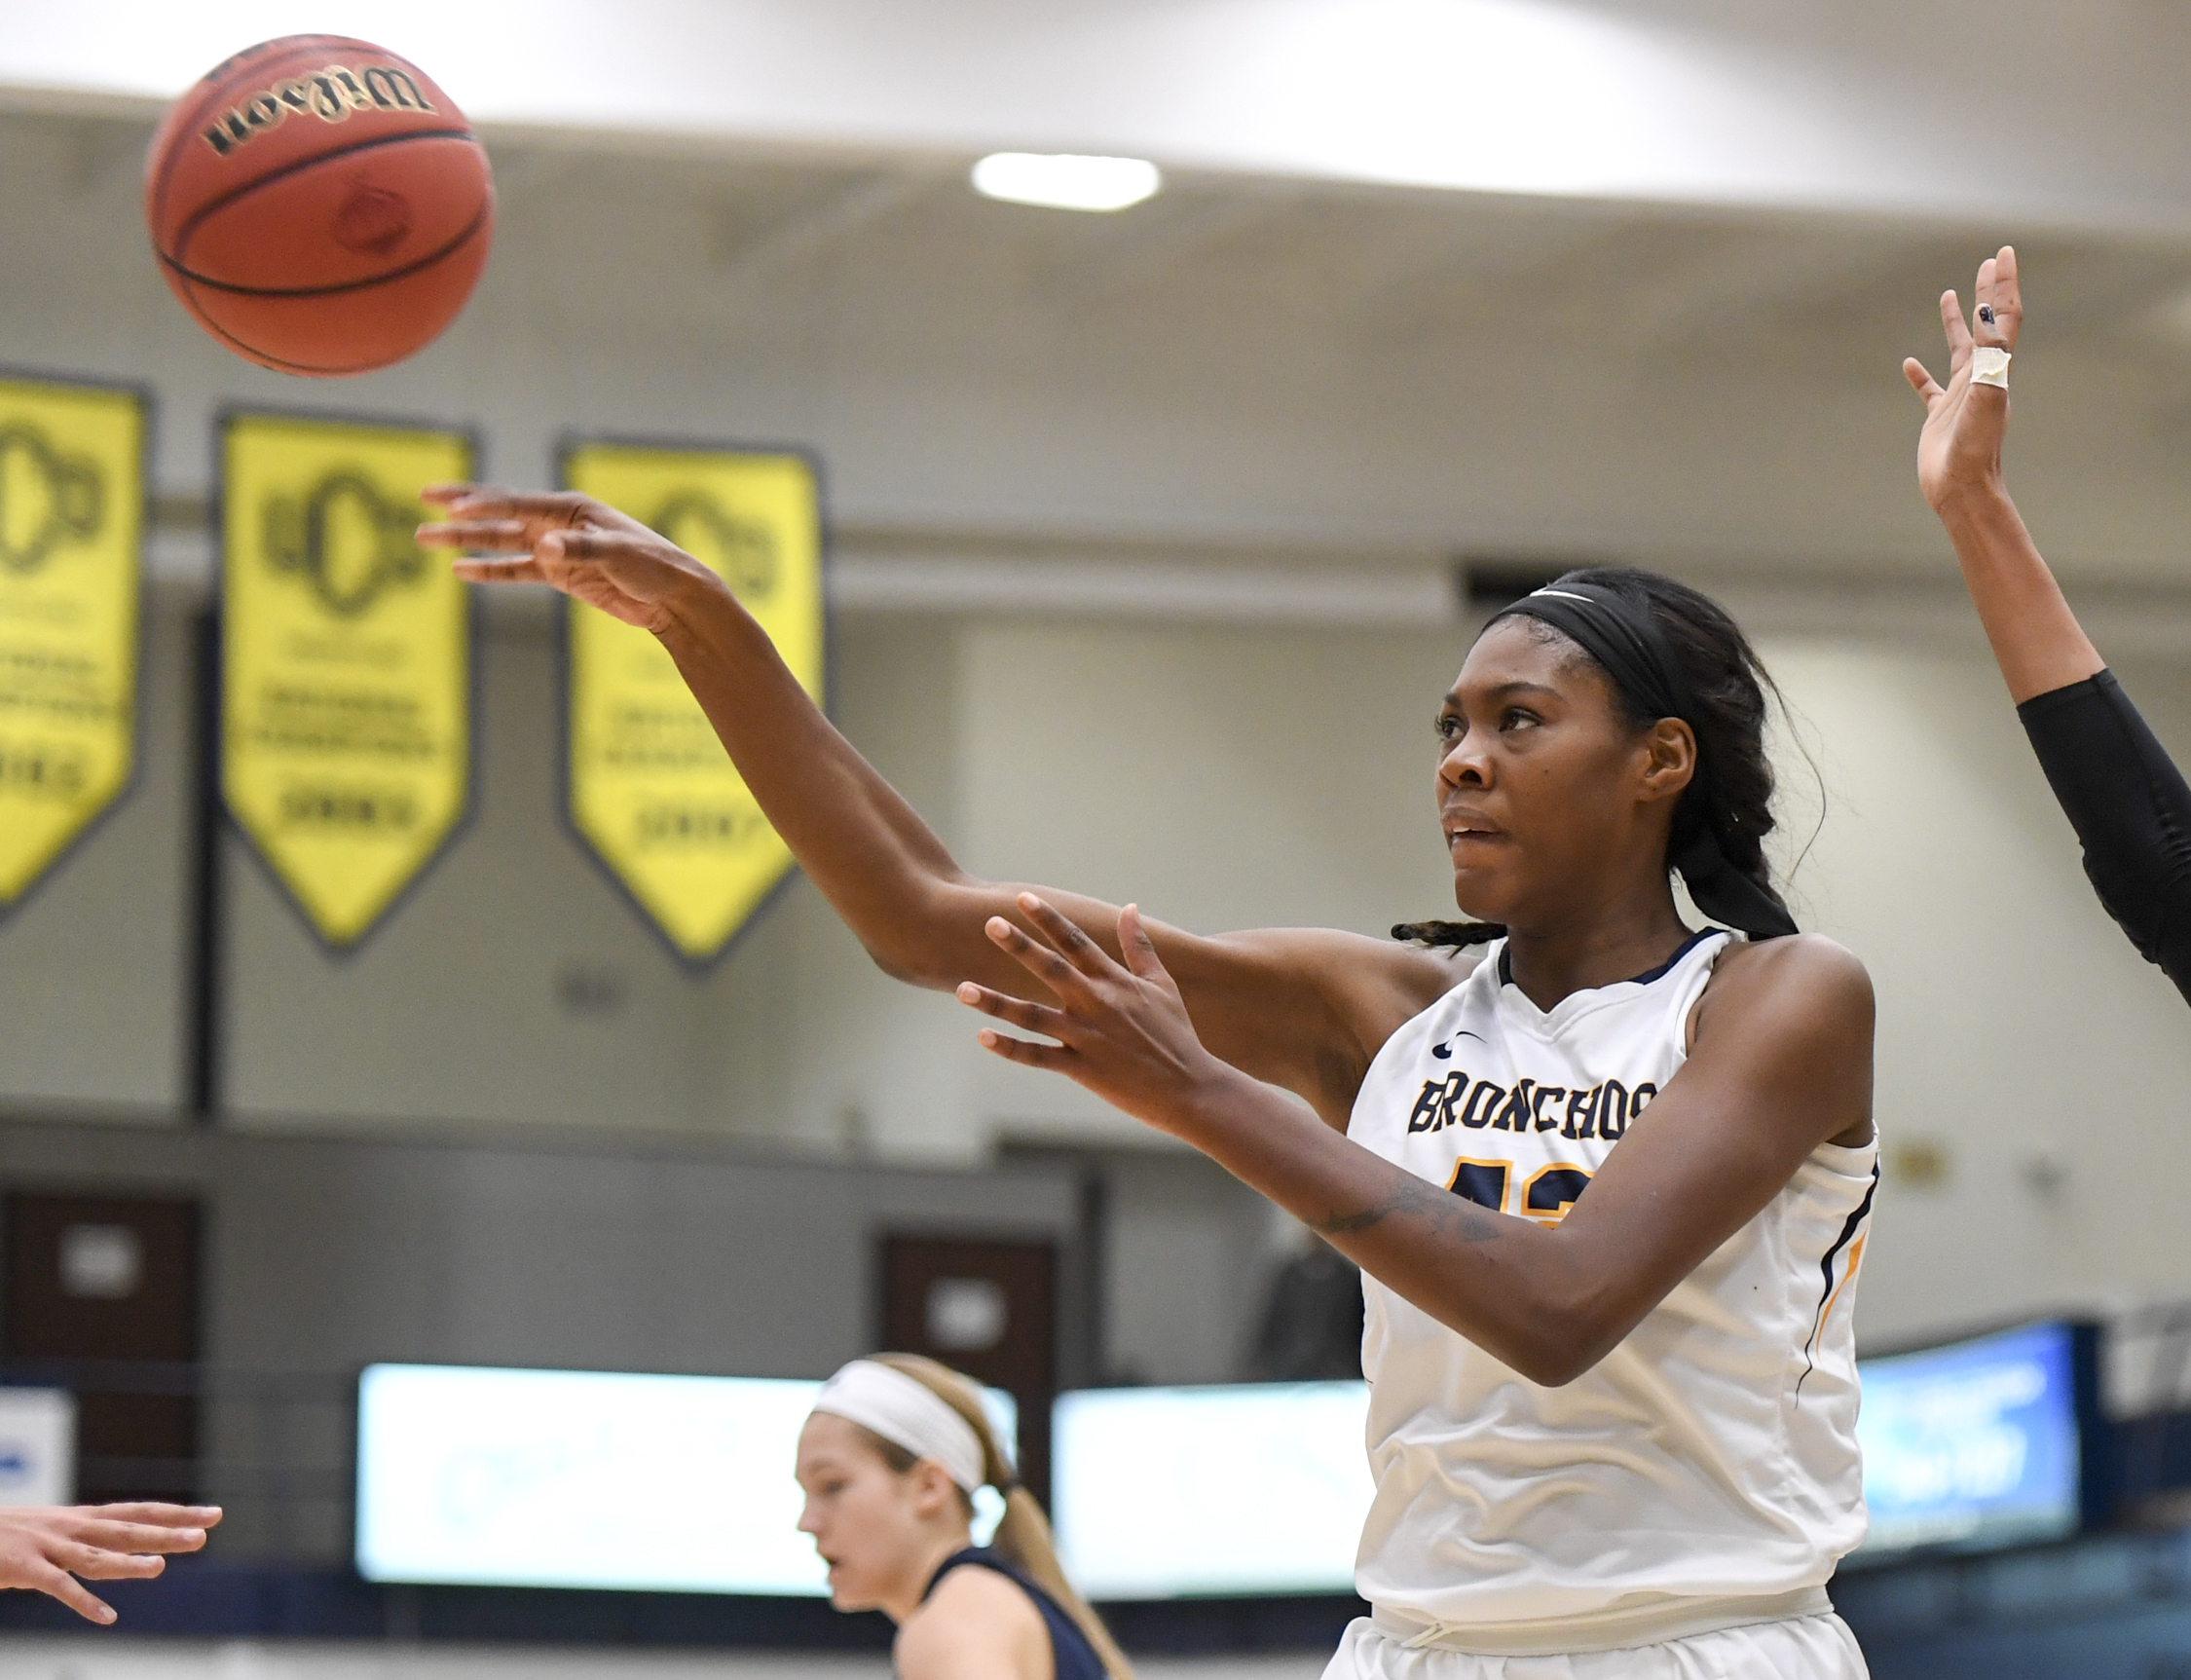 Women's basketball: Bronchos Defeat Arkansas-Fort Smith